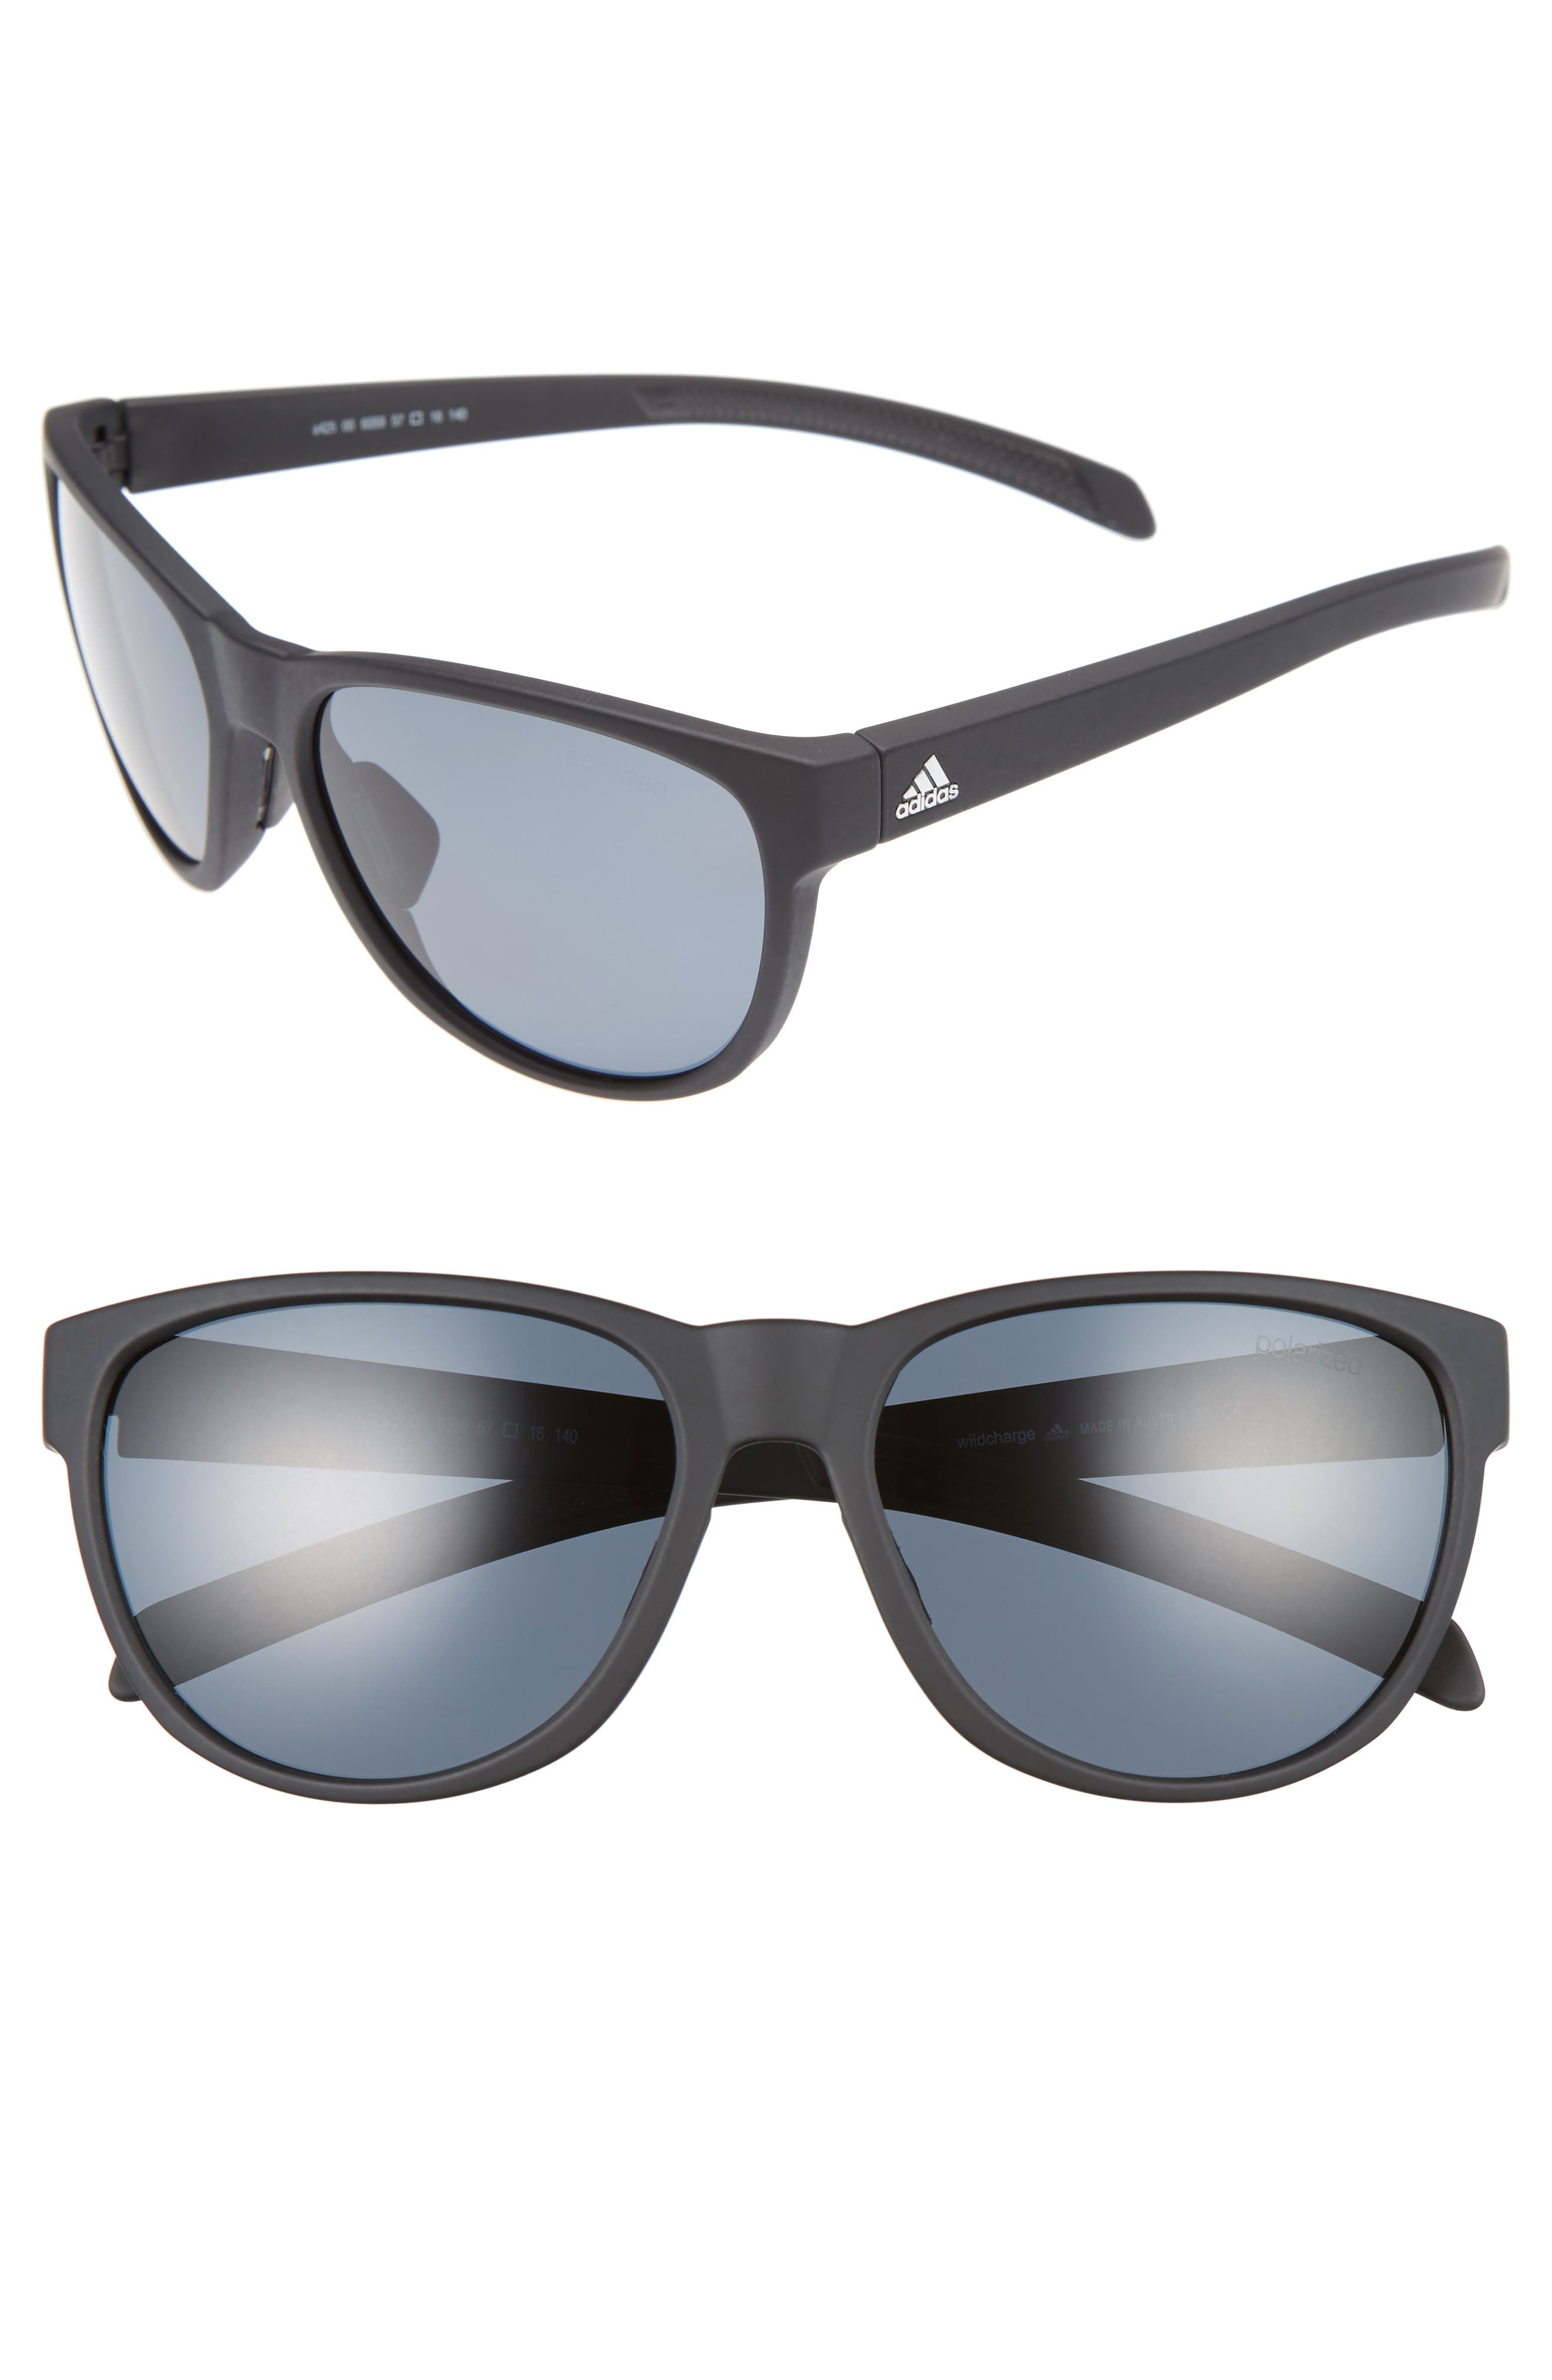 Wildcharge 61mm Polarized Sunglasses,                             Main thumbnail 1, color,                             001